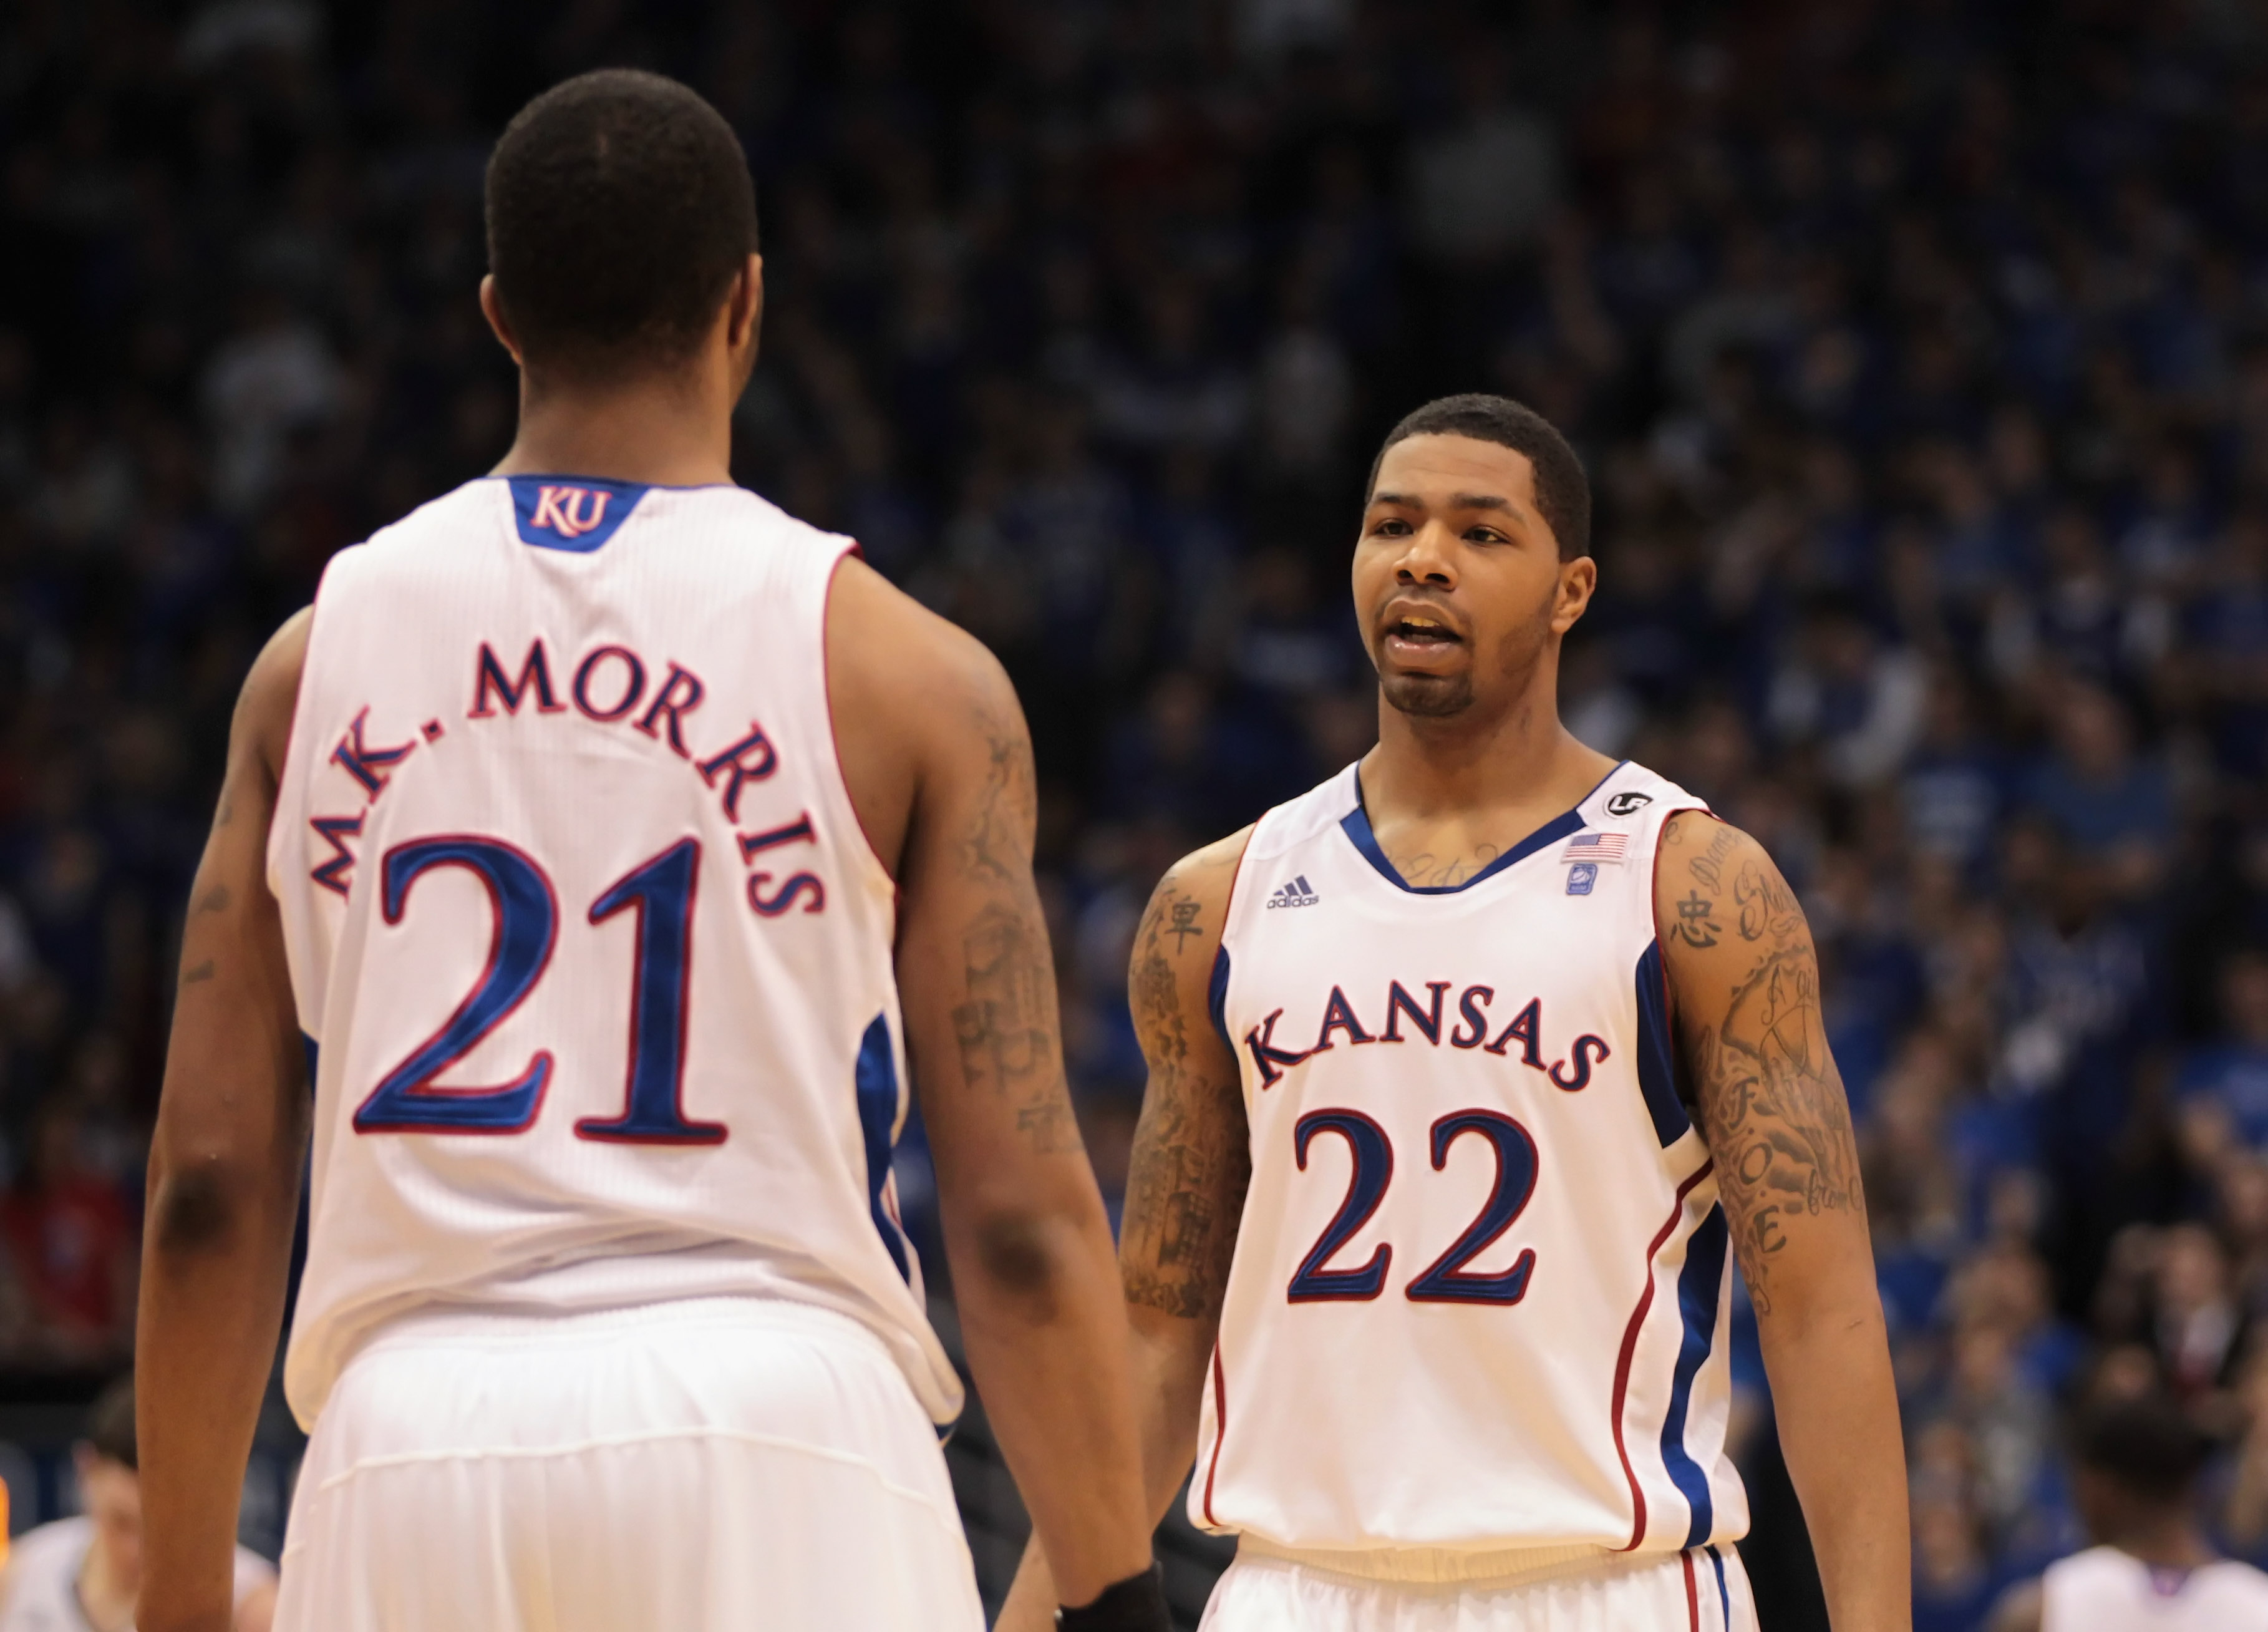 LAWRENCE, KS - FEBRUARY 12:  Marcus Morris #22 of the Kansas Jayhawks talks with his brother Markieff Morris #21 during the game against the Iowa State Cyclones on February 12, 2011 at Allen Fieldhouse in Lawrence, Kansas.  (Photo by Jamie Squire/Getty Im